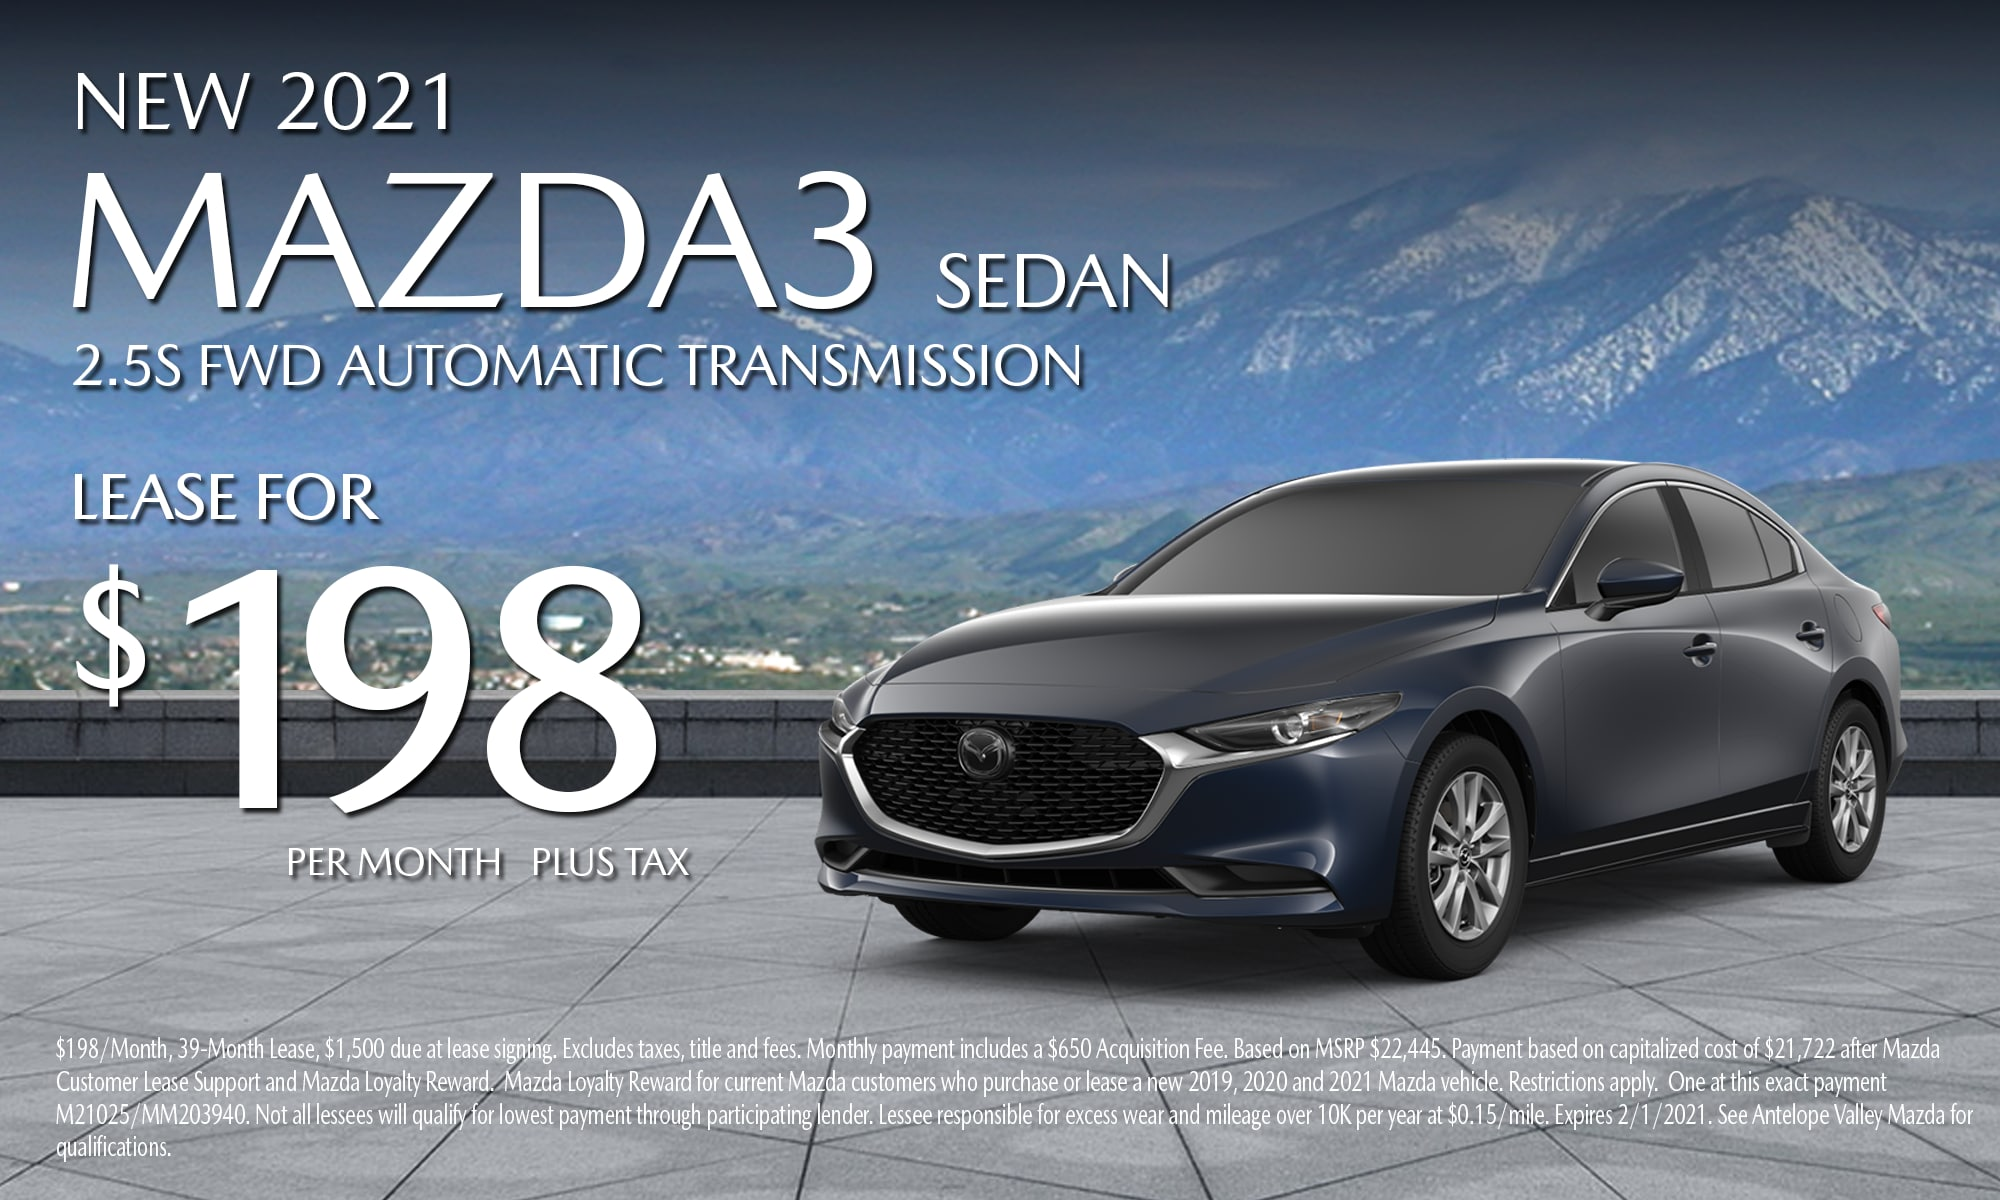 Antelope Valley Mazda Special lease offer on 2021 Mazda3